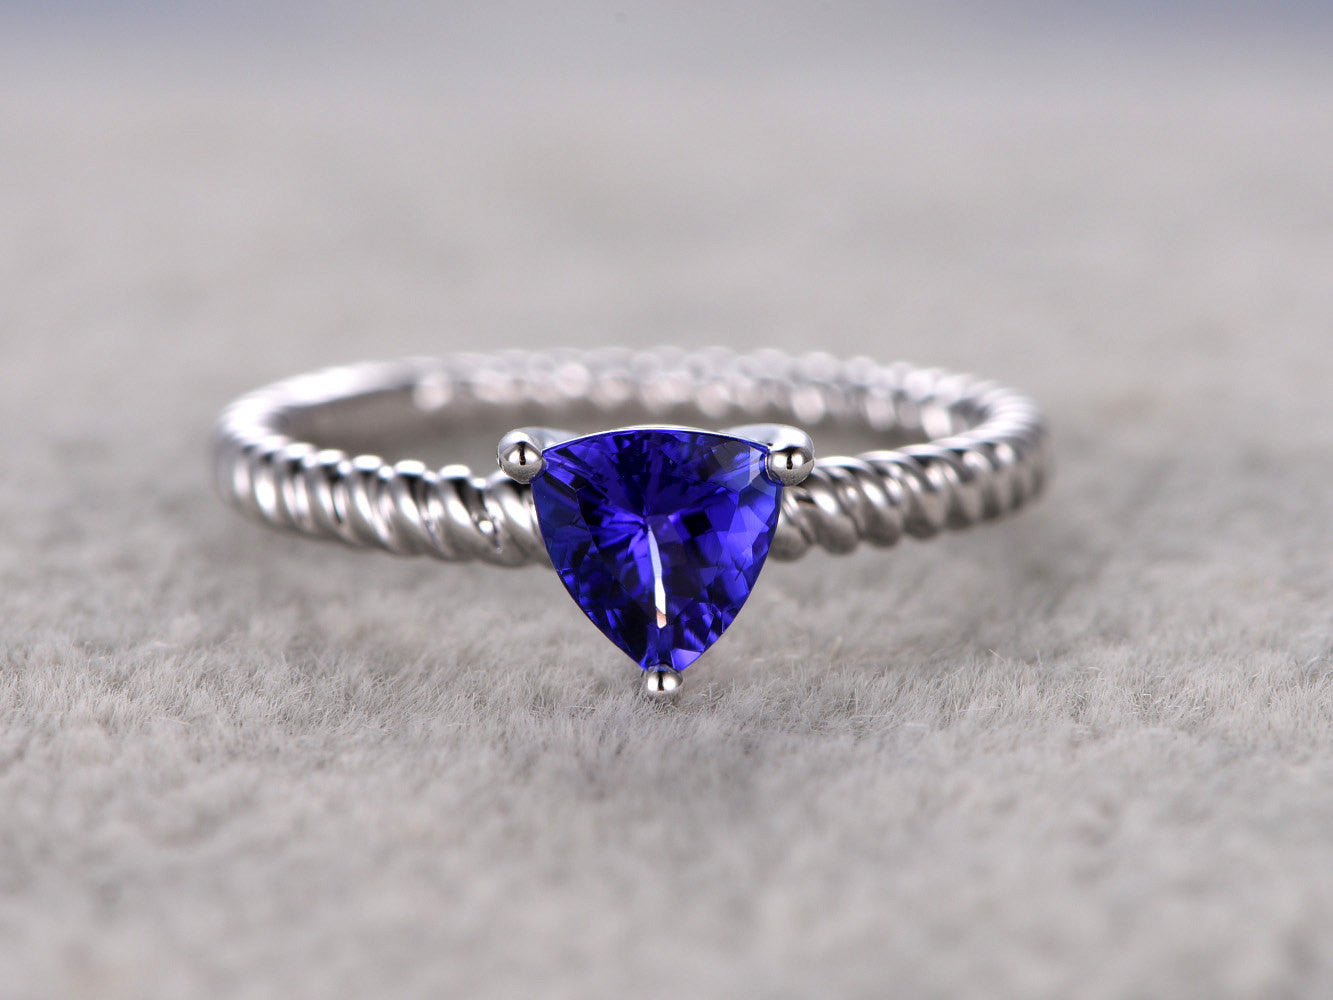 Trillion Tanzanite Engagement ring,Solitaire ring,Twist wedding band,14K White Gold